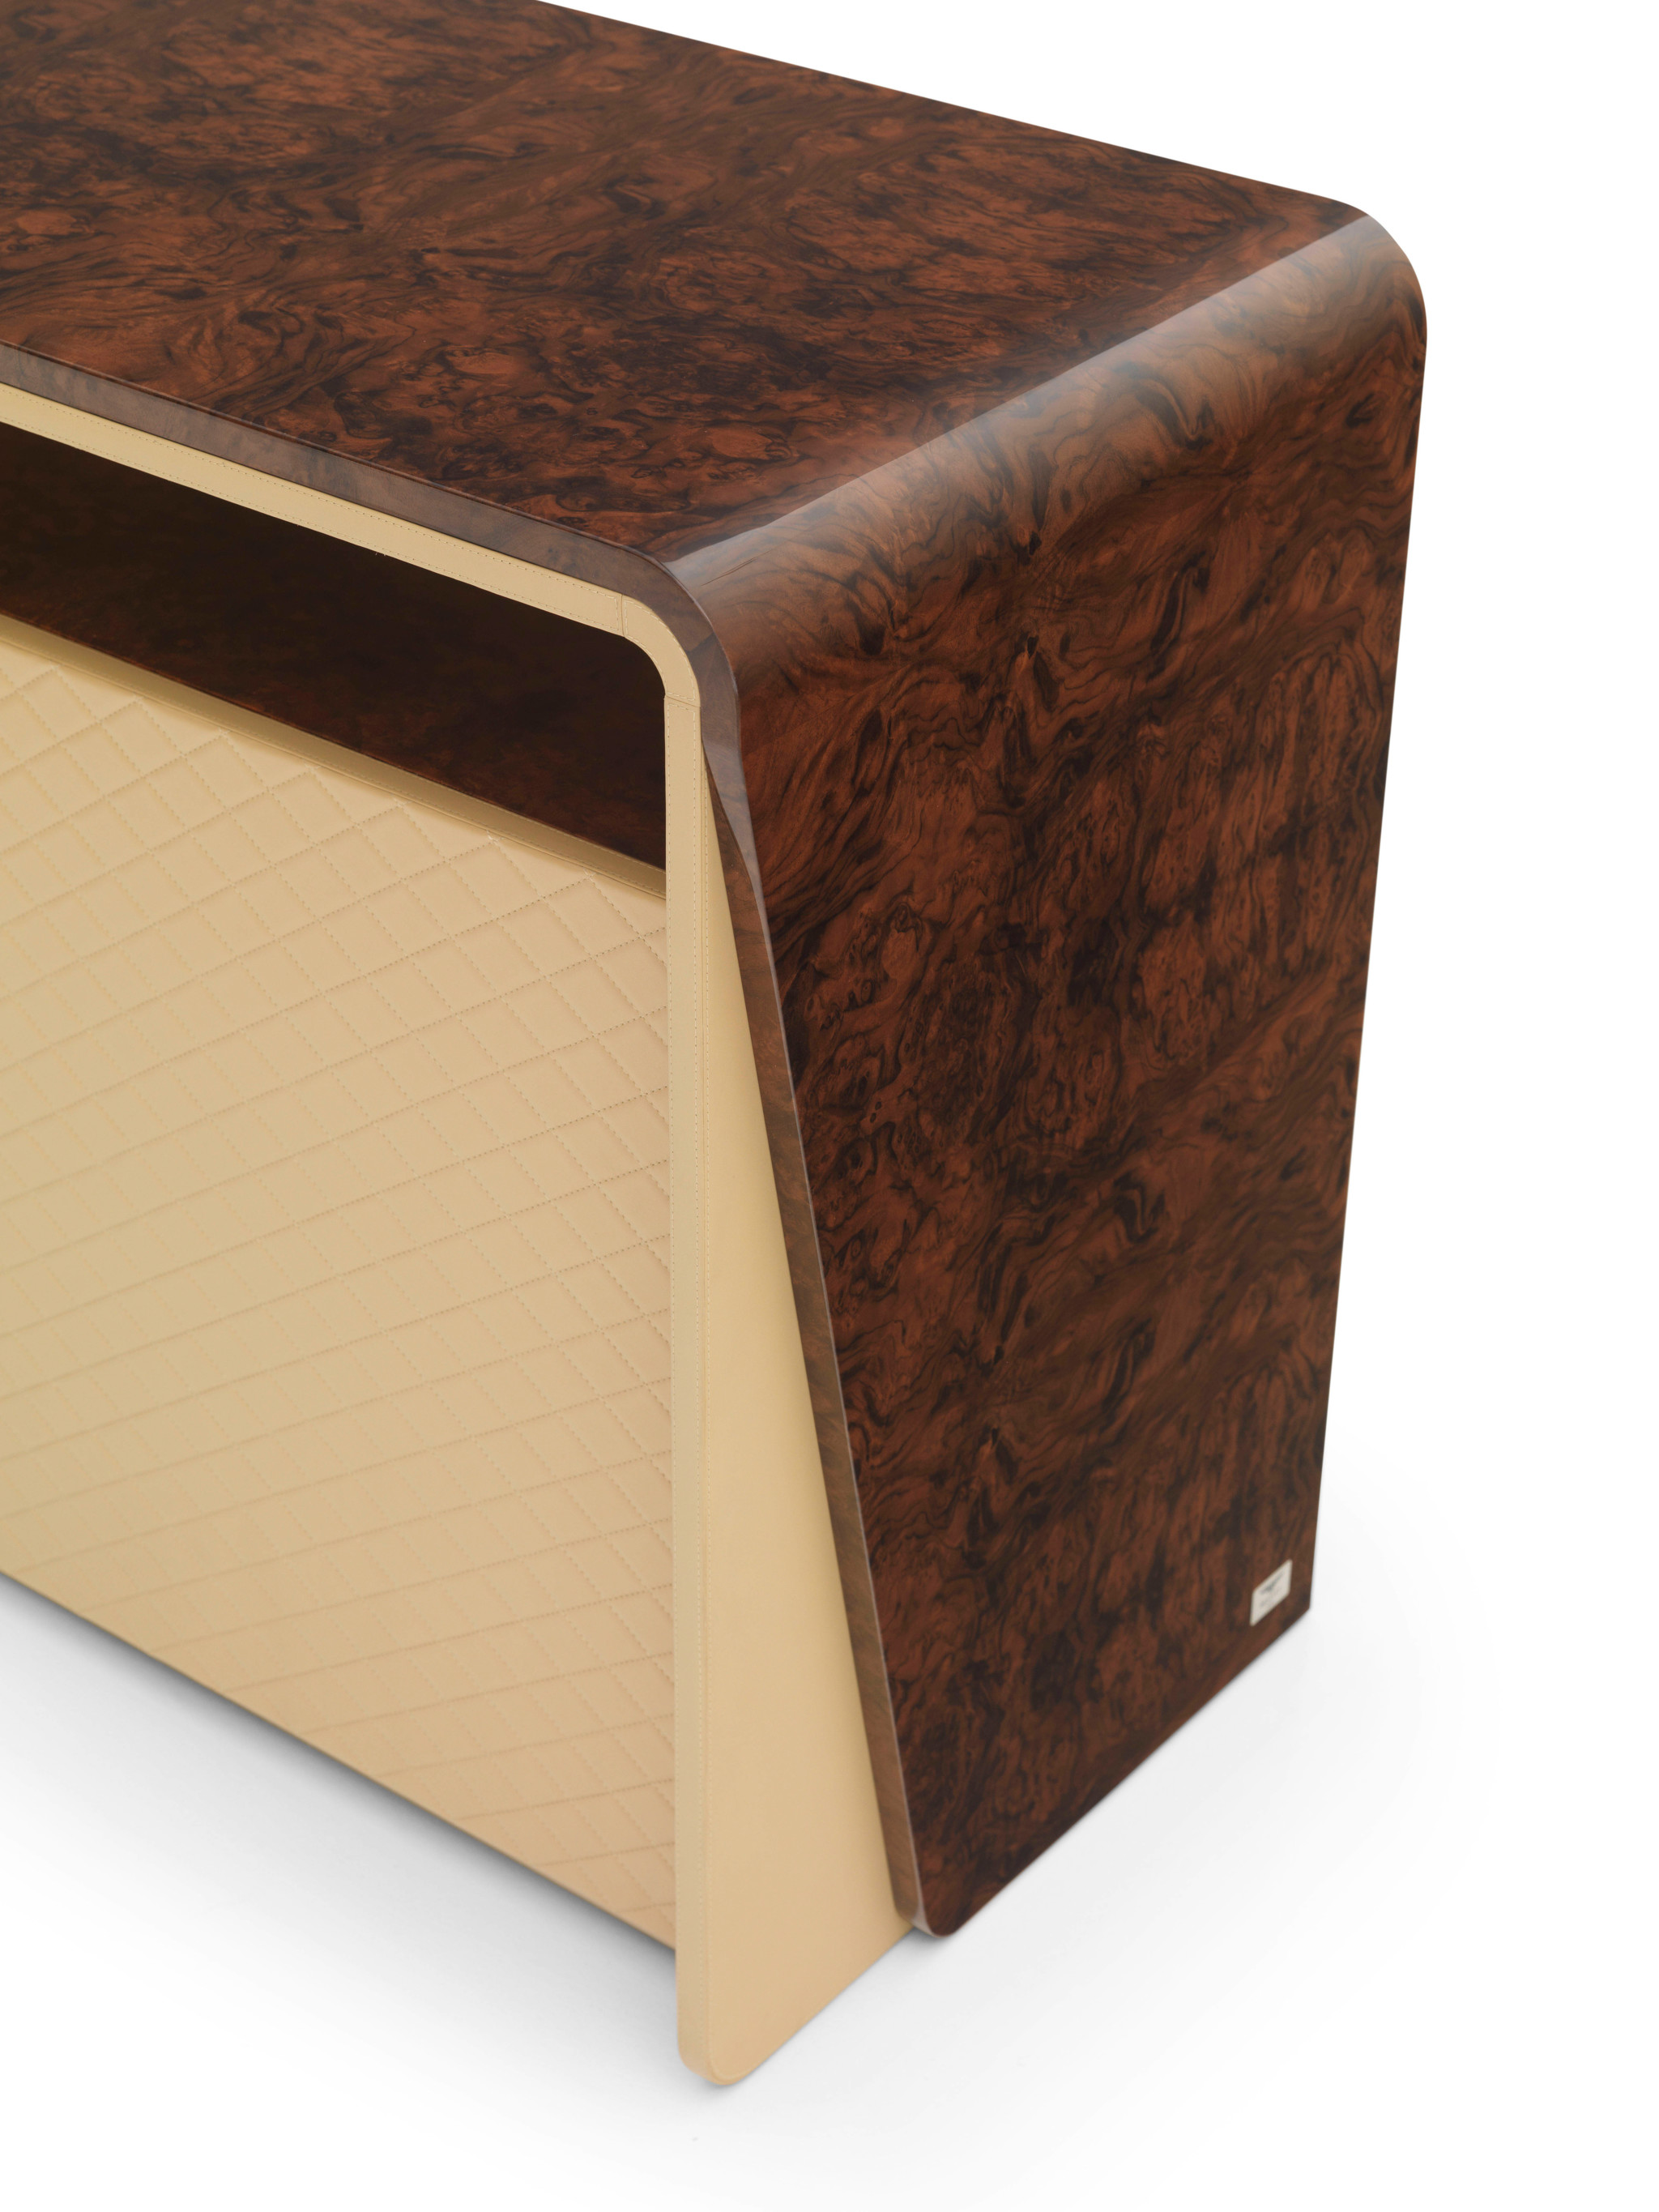 bent00230000002_bentley_eastgate_chest_of_drawers_3_e44c4d552f84ef38fe47f0e8dbec291c